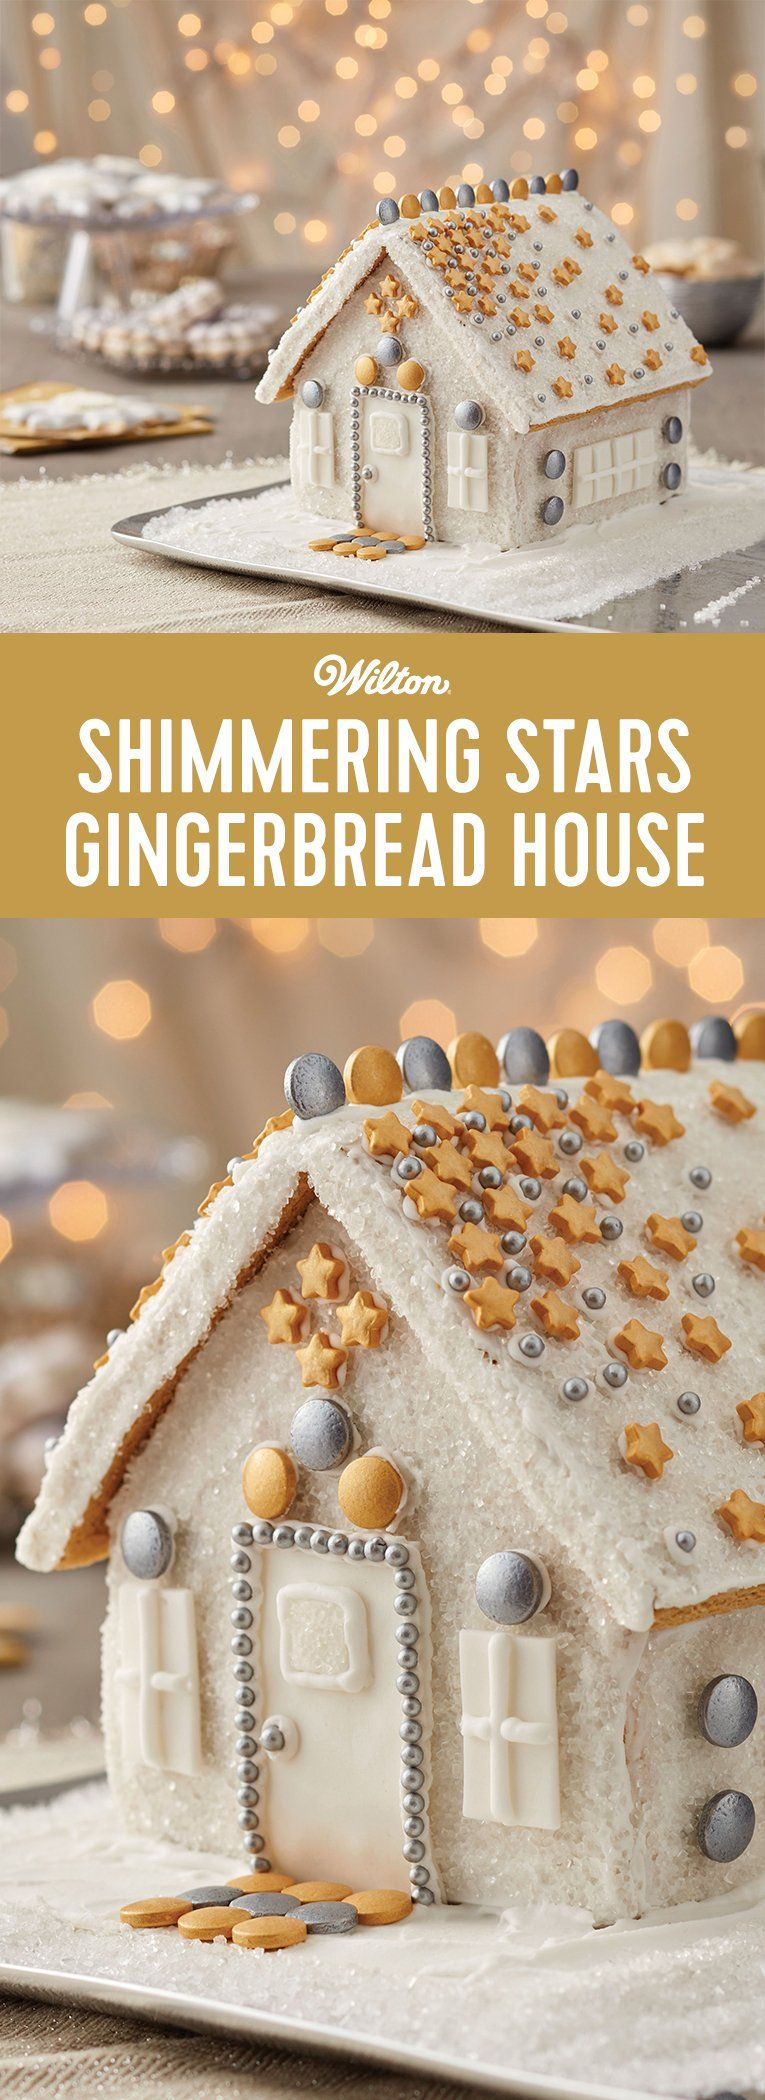 Silver And Gold Shimmering Stars Sparkle This Gingerbread House Is Covered